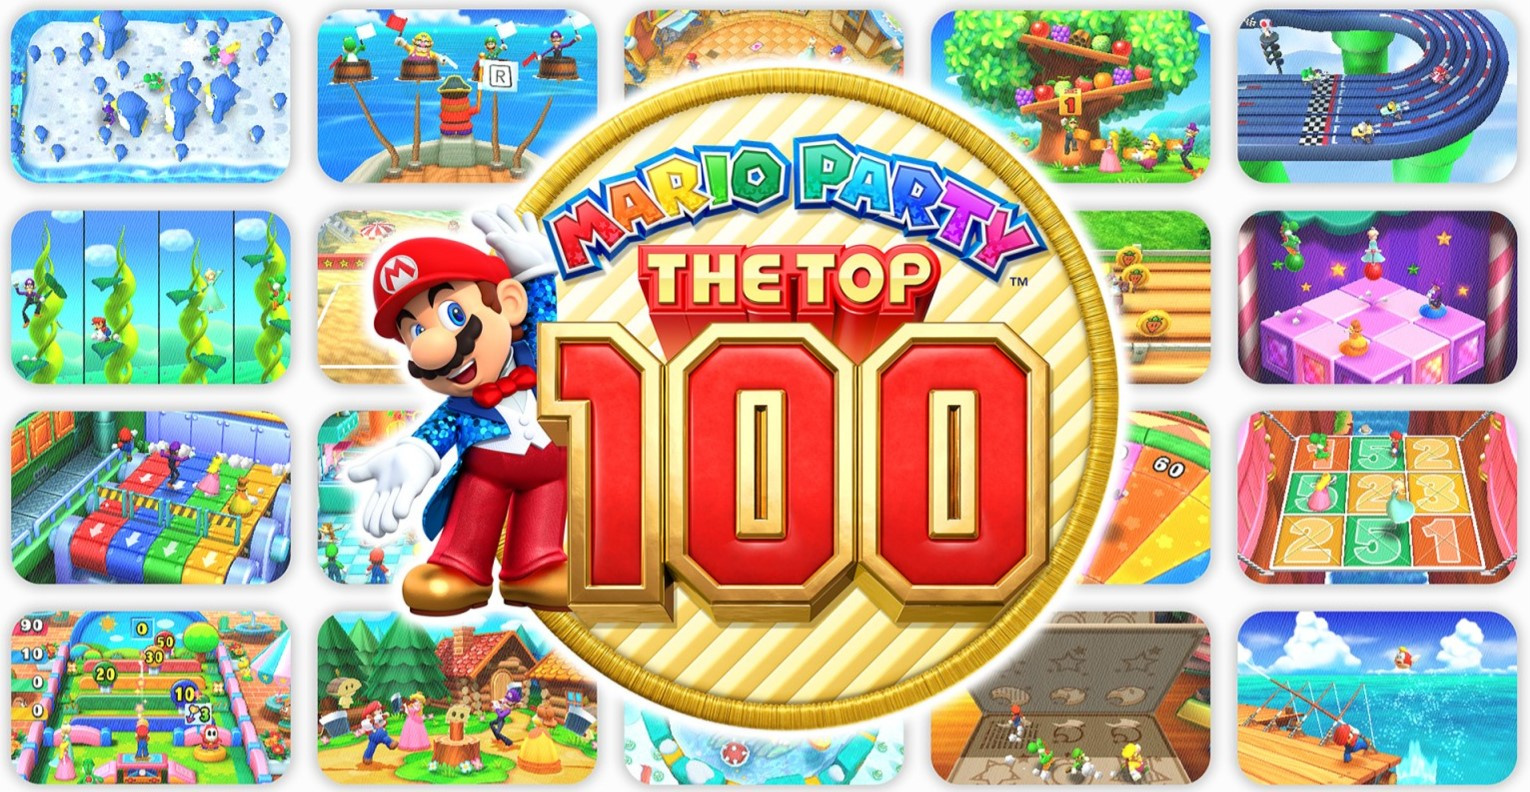 This Week's Japan Charts Show Nintendo With Eight Games In